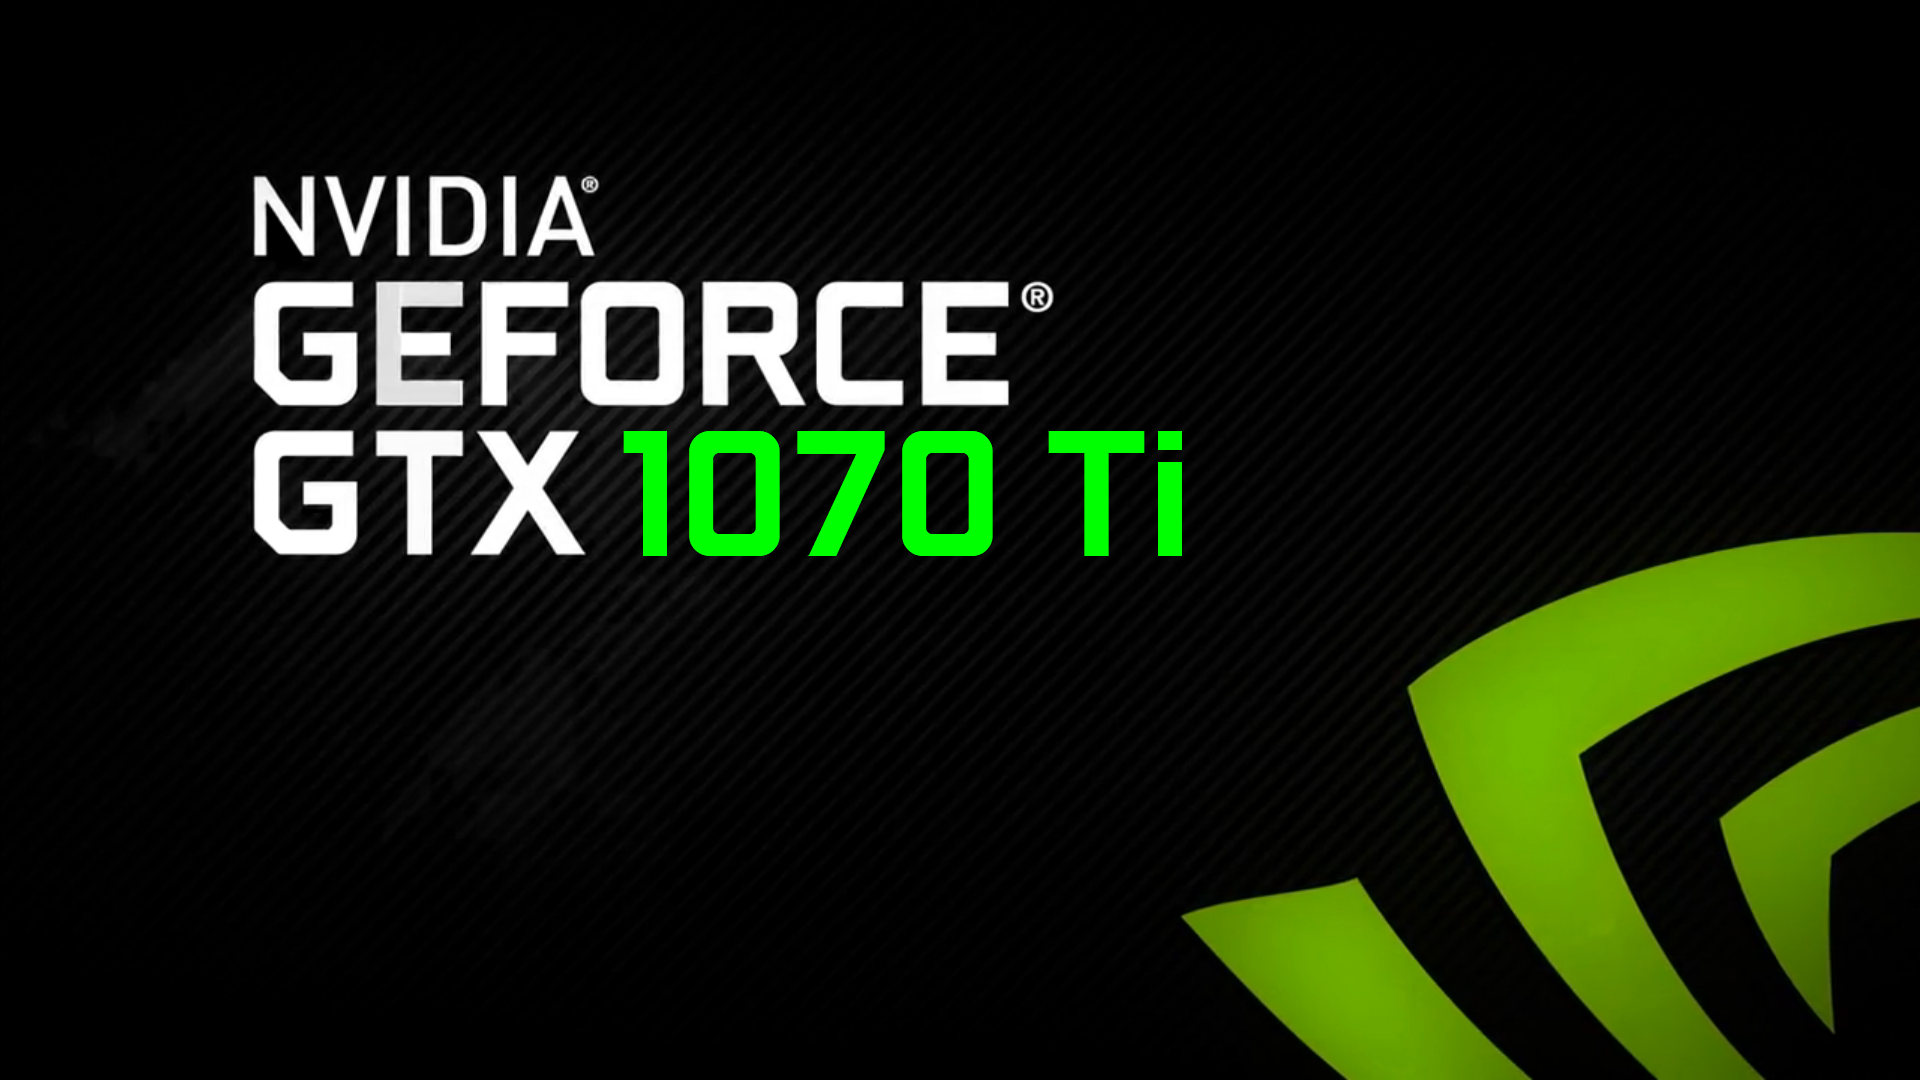 GeForce GTX 1070 Ti - Price, Specifications, Benchmarks and Release